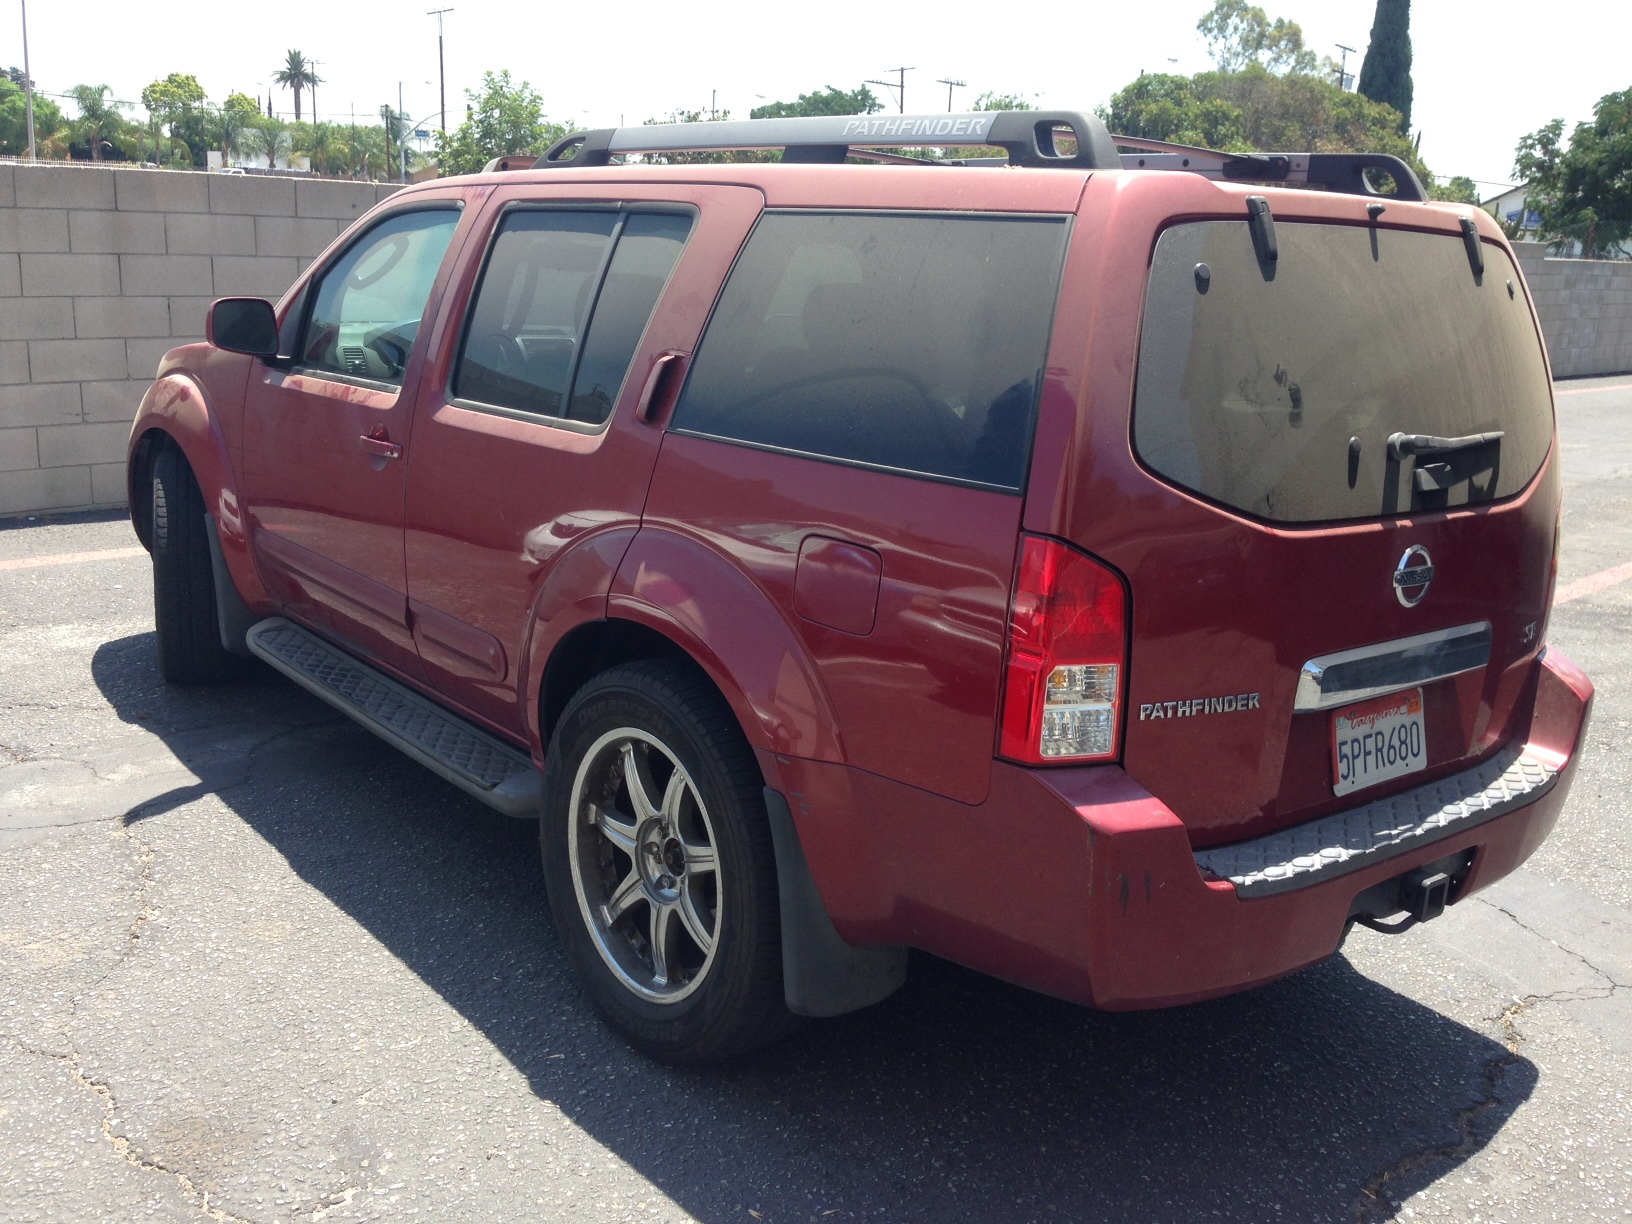 sell-2005-Nissan-Pathfinder-Castaic-Junction